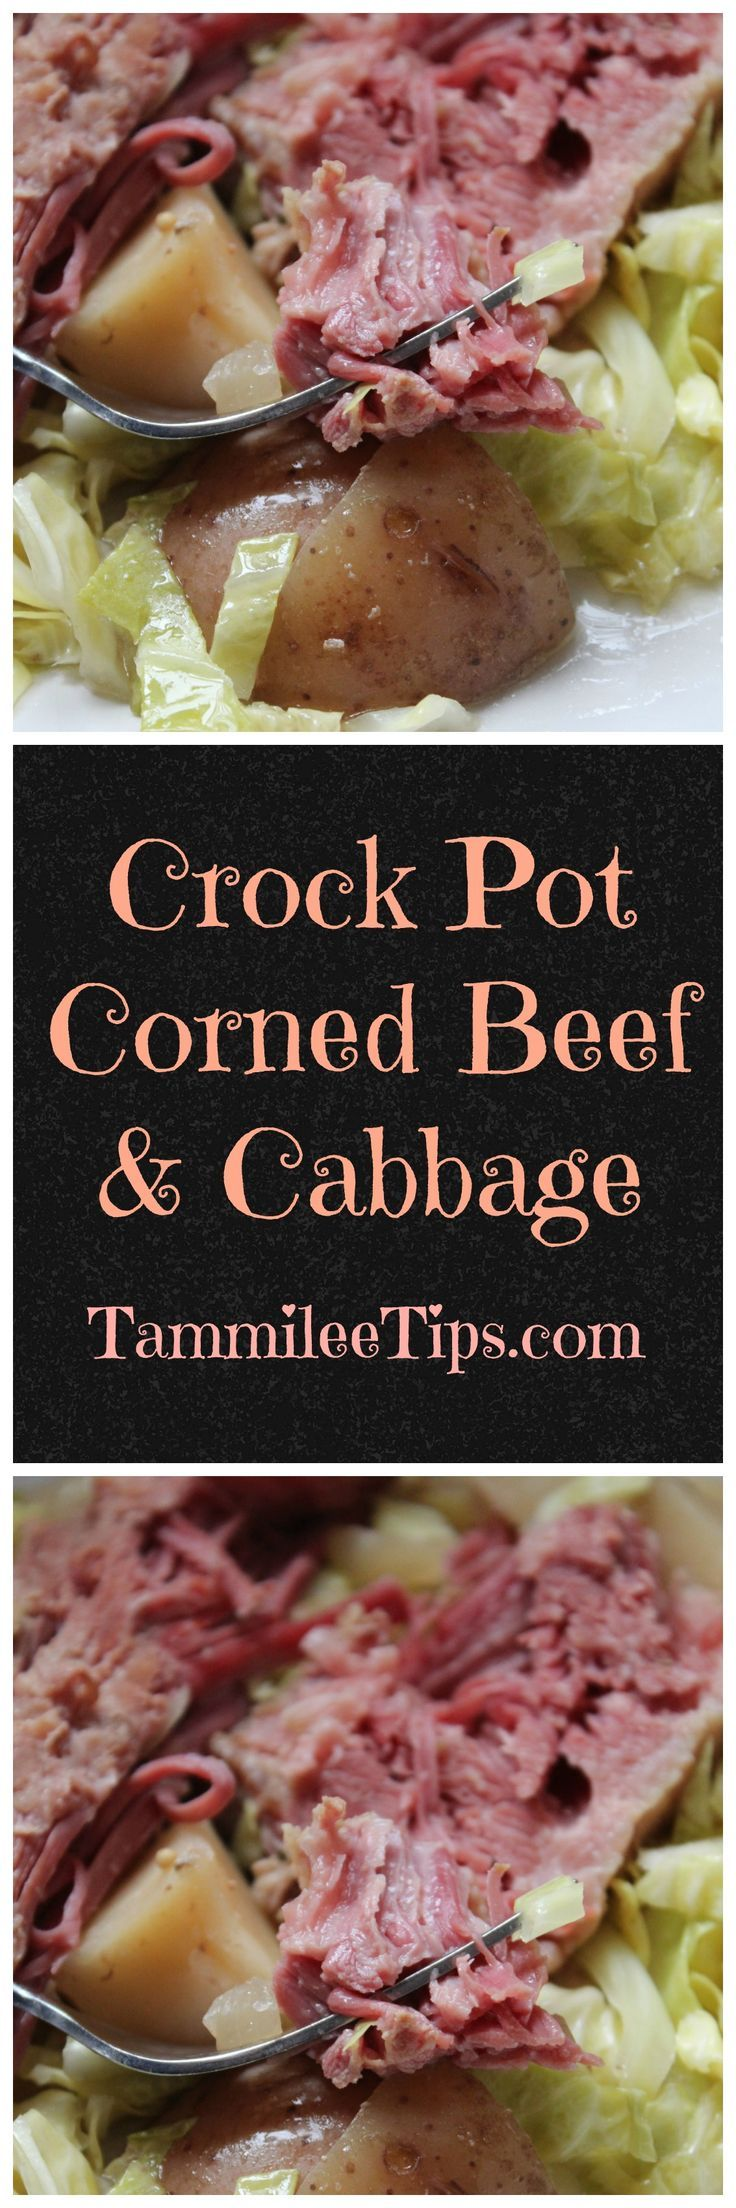 Crock Pot Corned Beef and Cabbage Recipe not just for St. Patrick Day! This easy slow cooker recipe is one of our best recipes! Made with cabbage, beer, and potatoes you just can't go wrong!